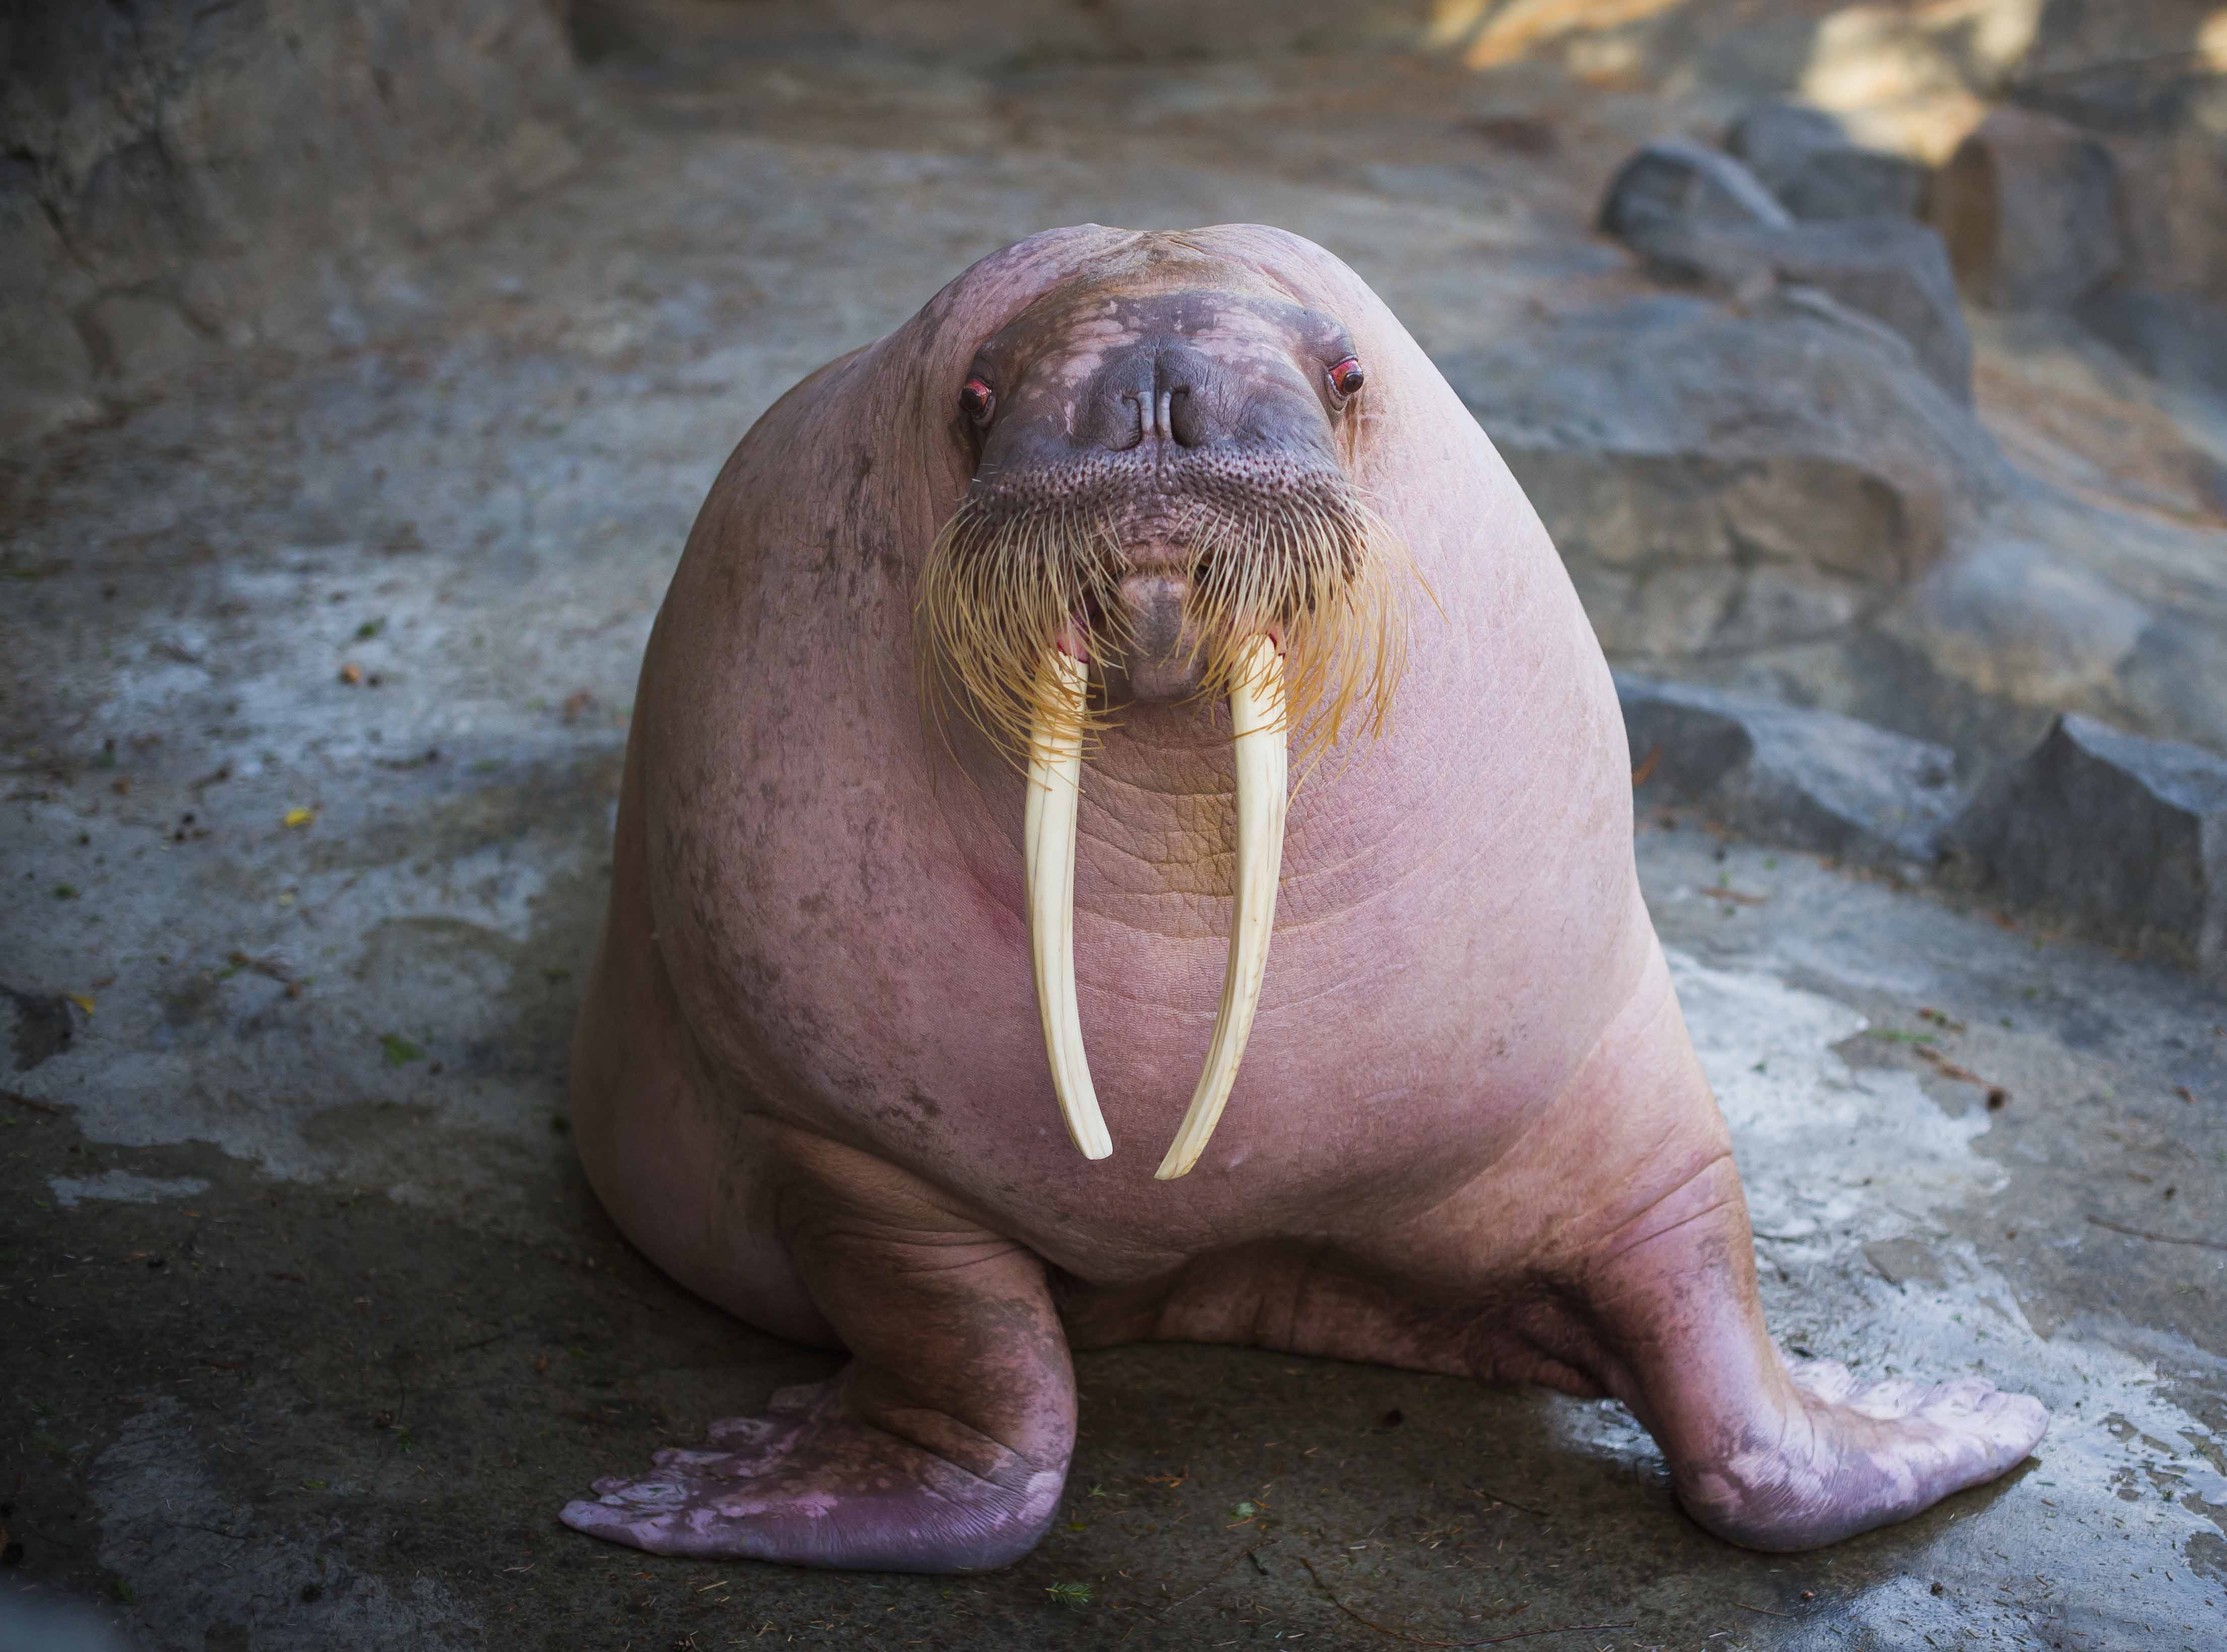 dozer is back to charm the walrus ladies at point defiance zoo